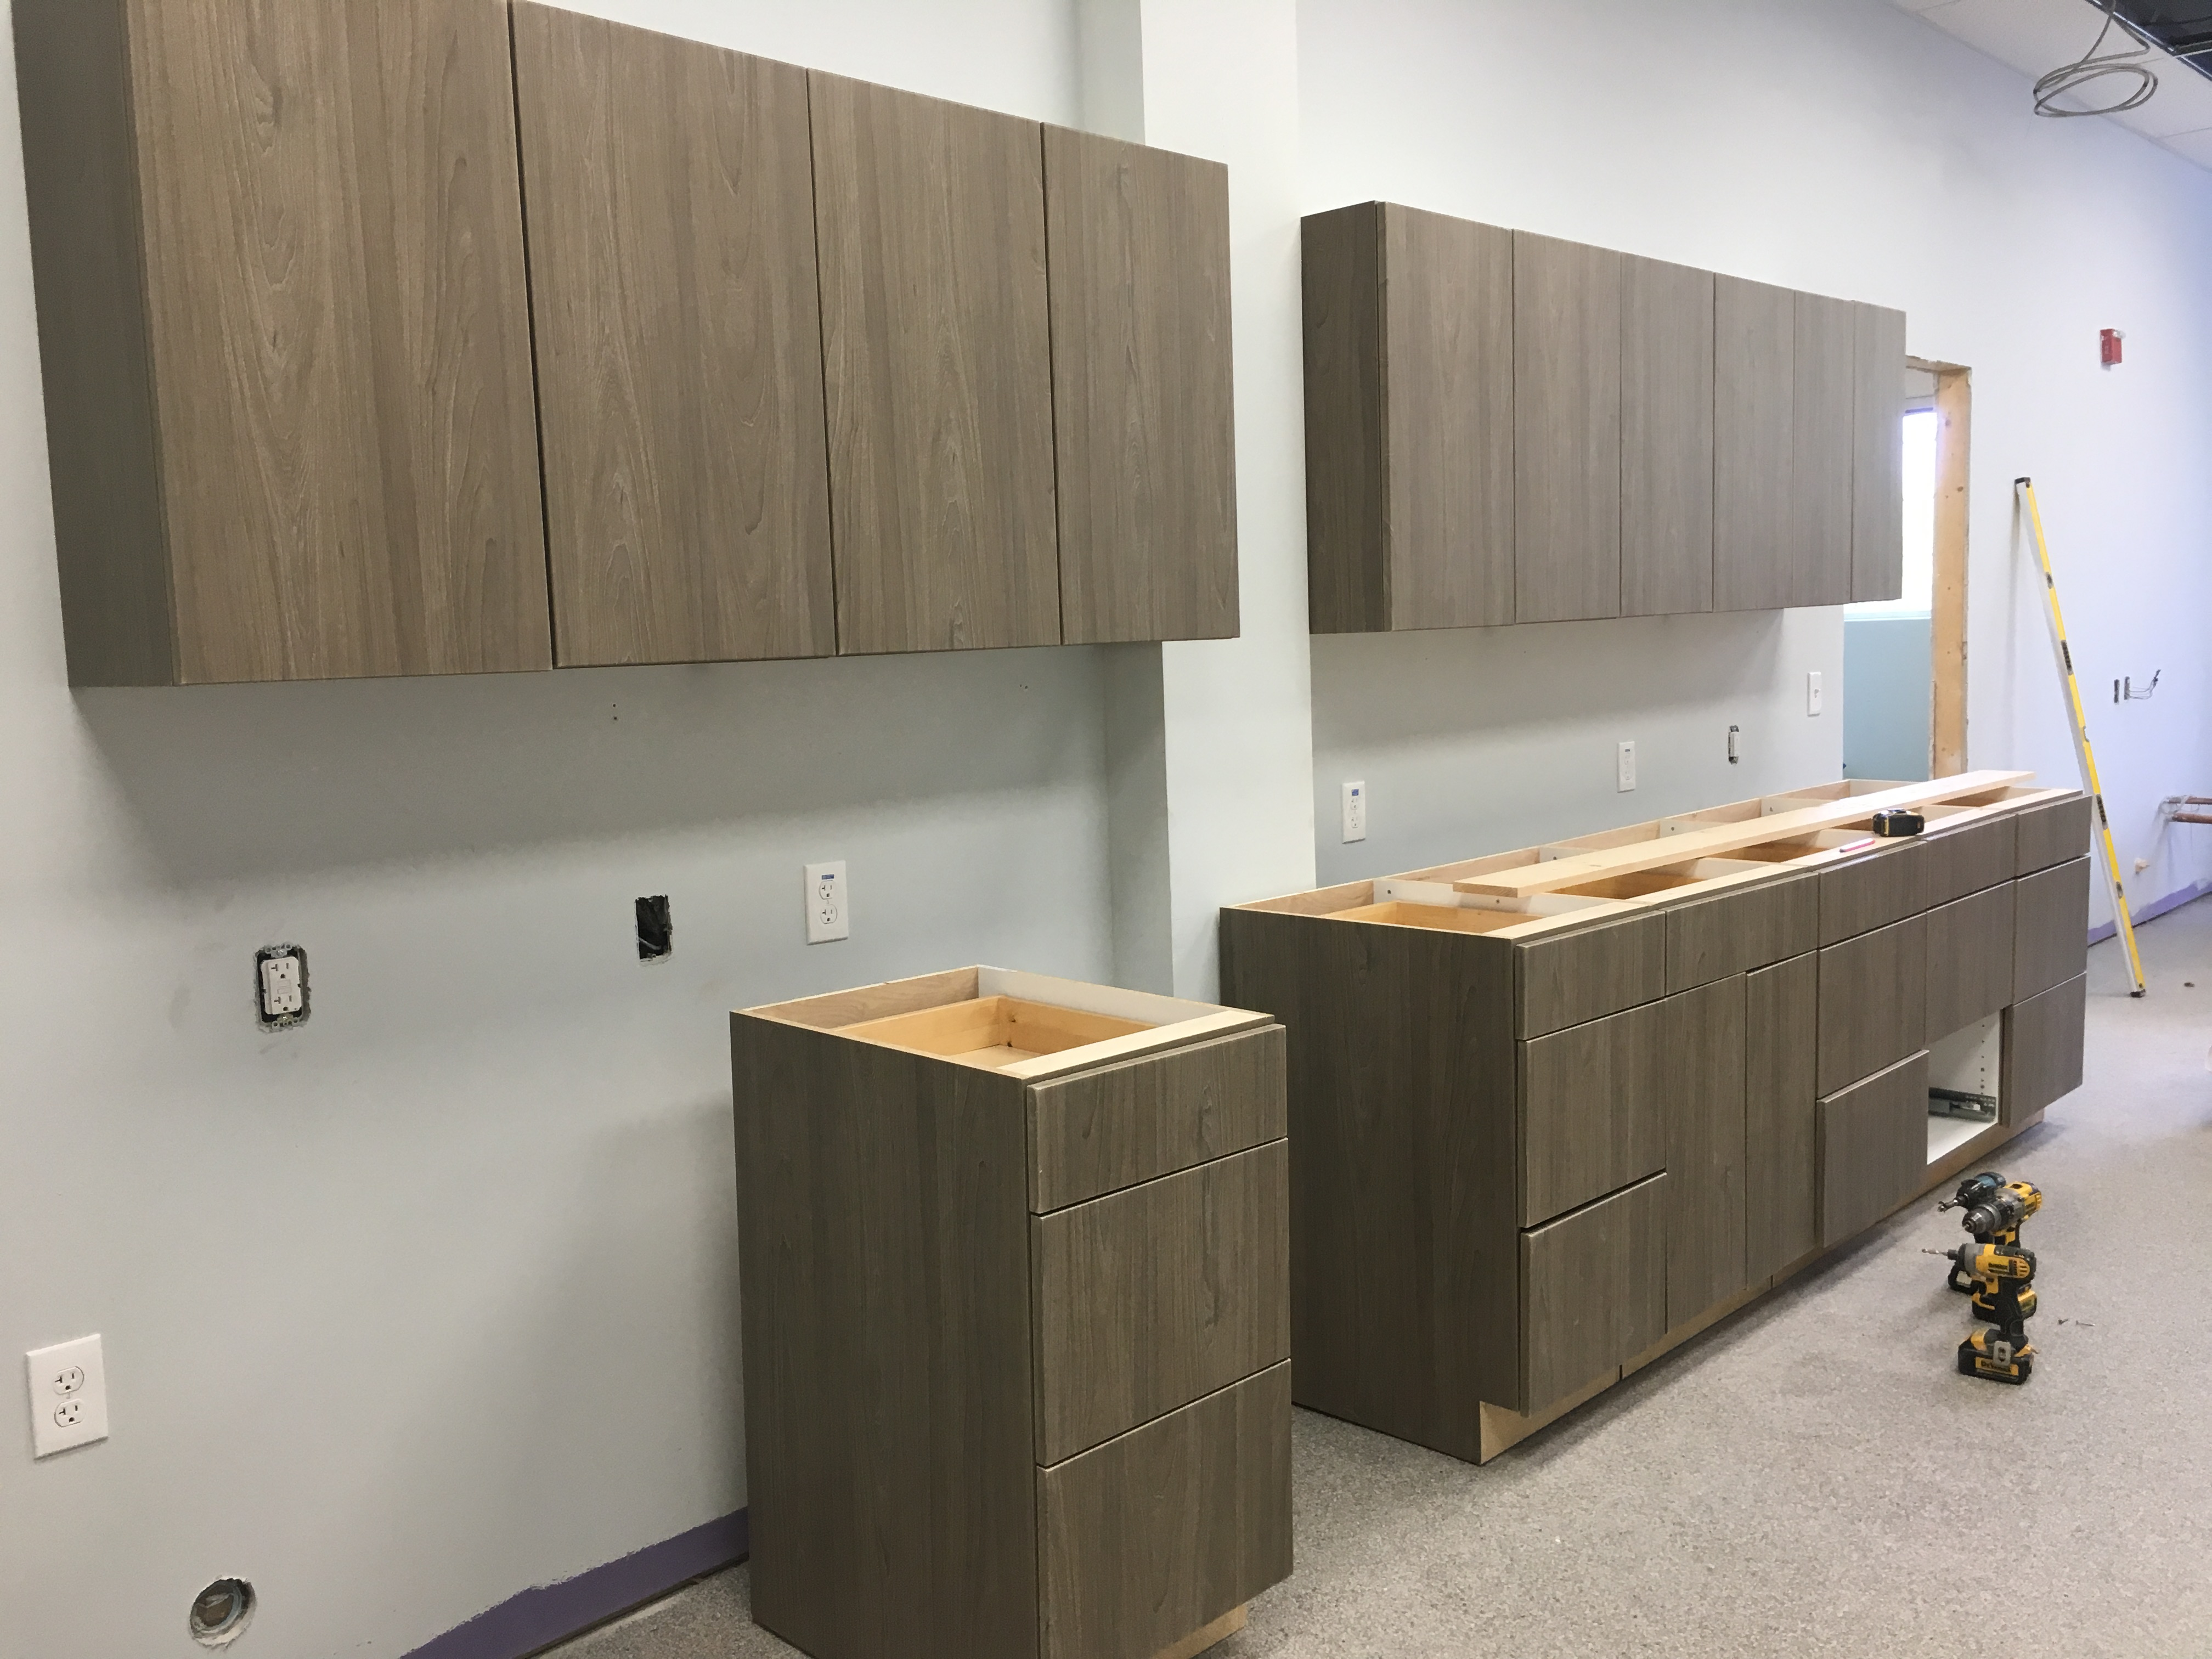 Treatment area cabinets PMAH Vet Acton MA